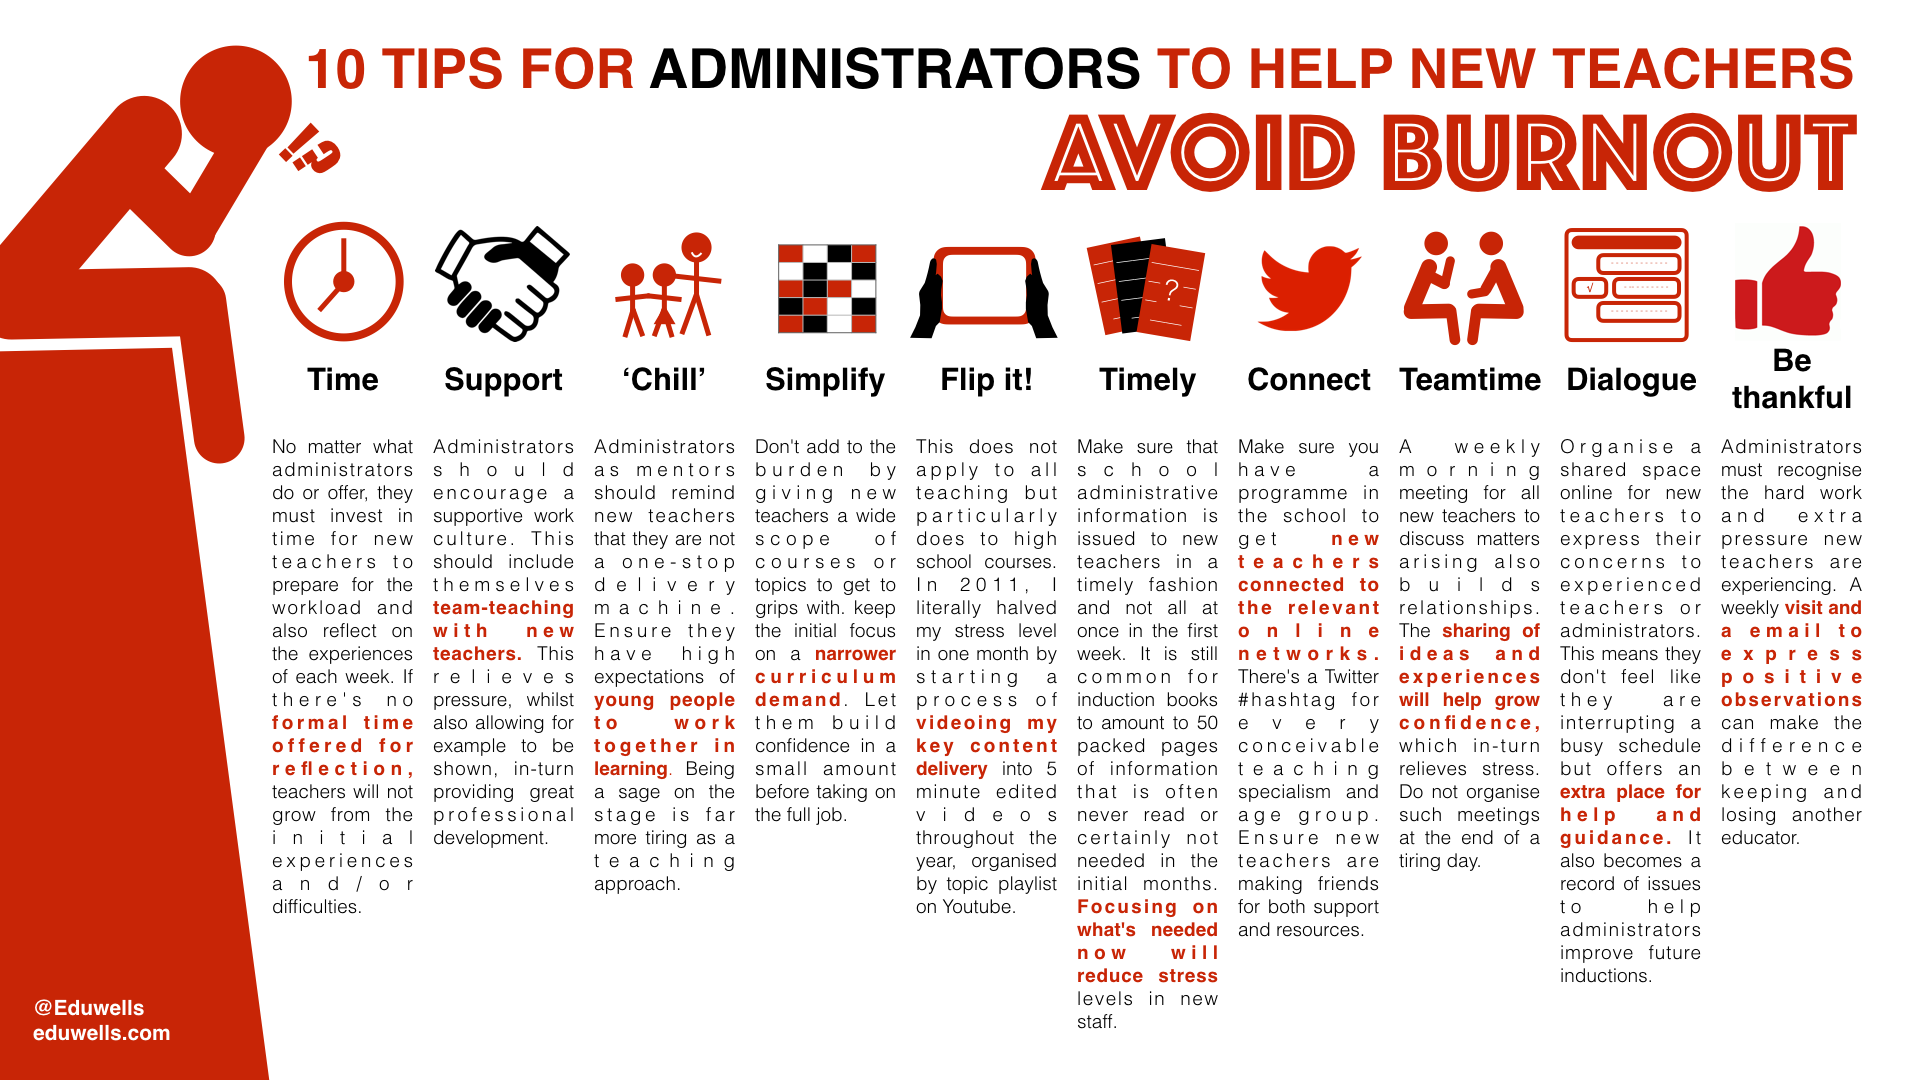 10 tips for administrators to help new teachers avoid